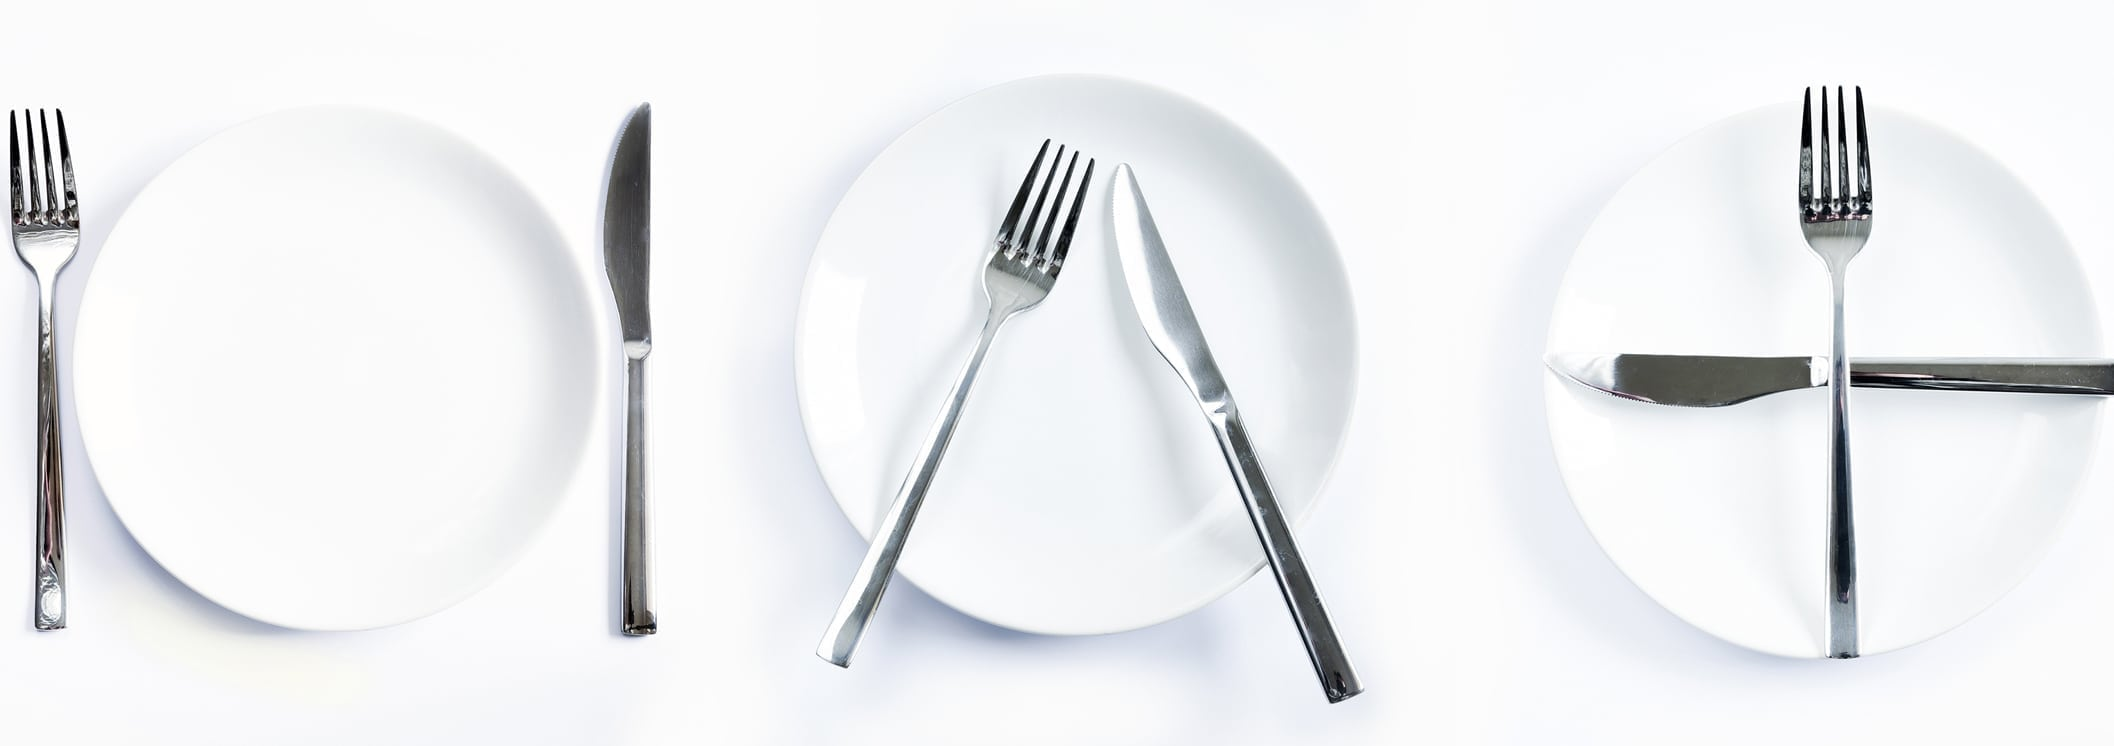 Dining etiquette, forks and knifes signals